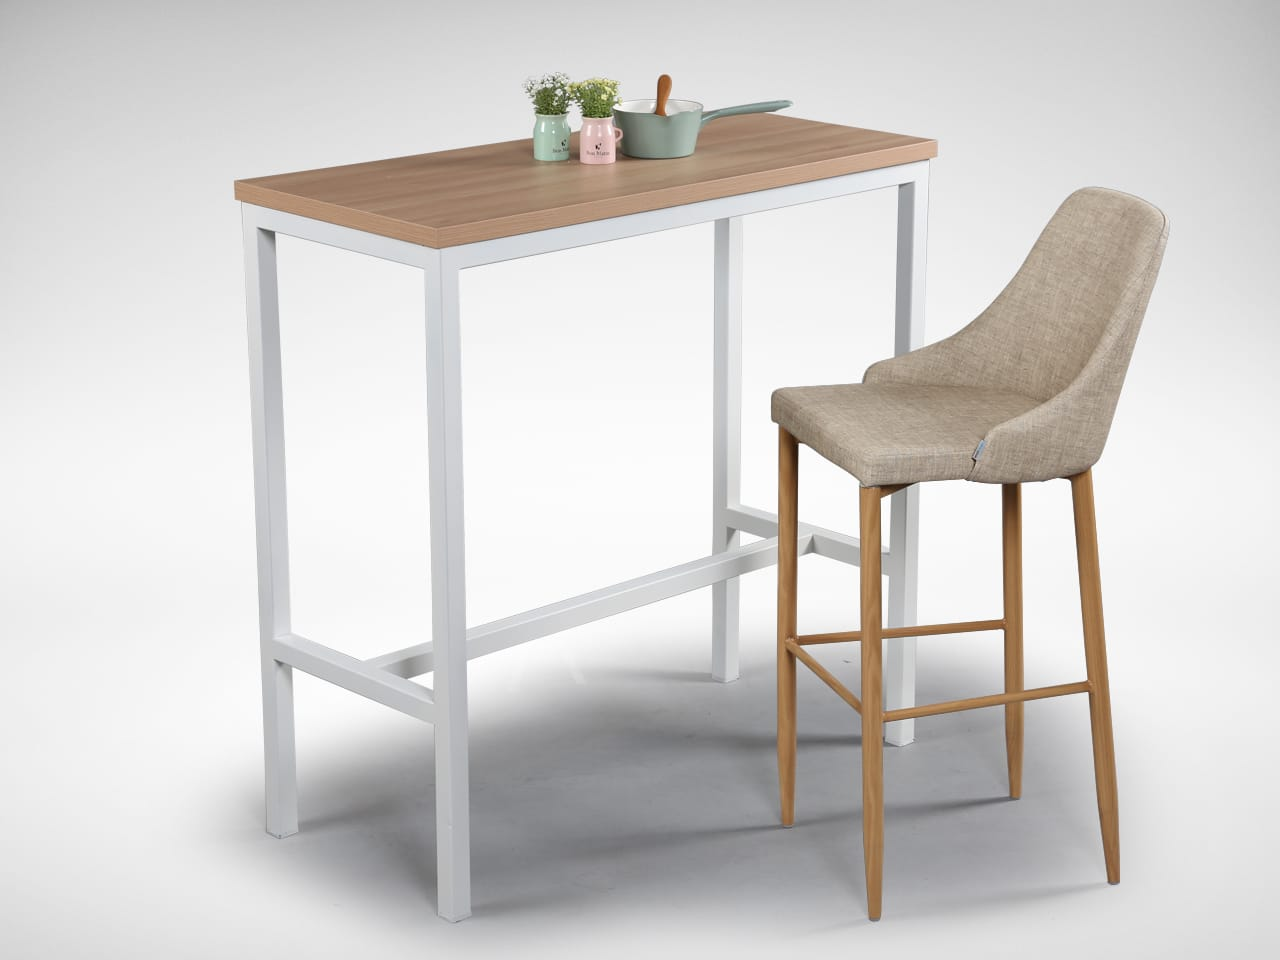 Match with [Decker Bar Table]<br />